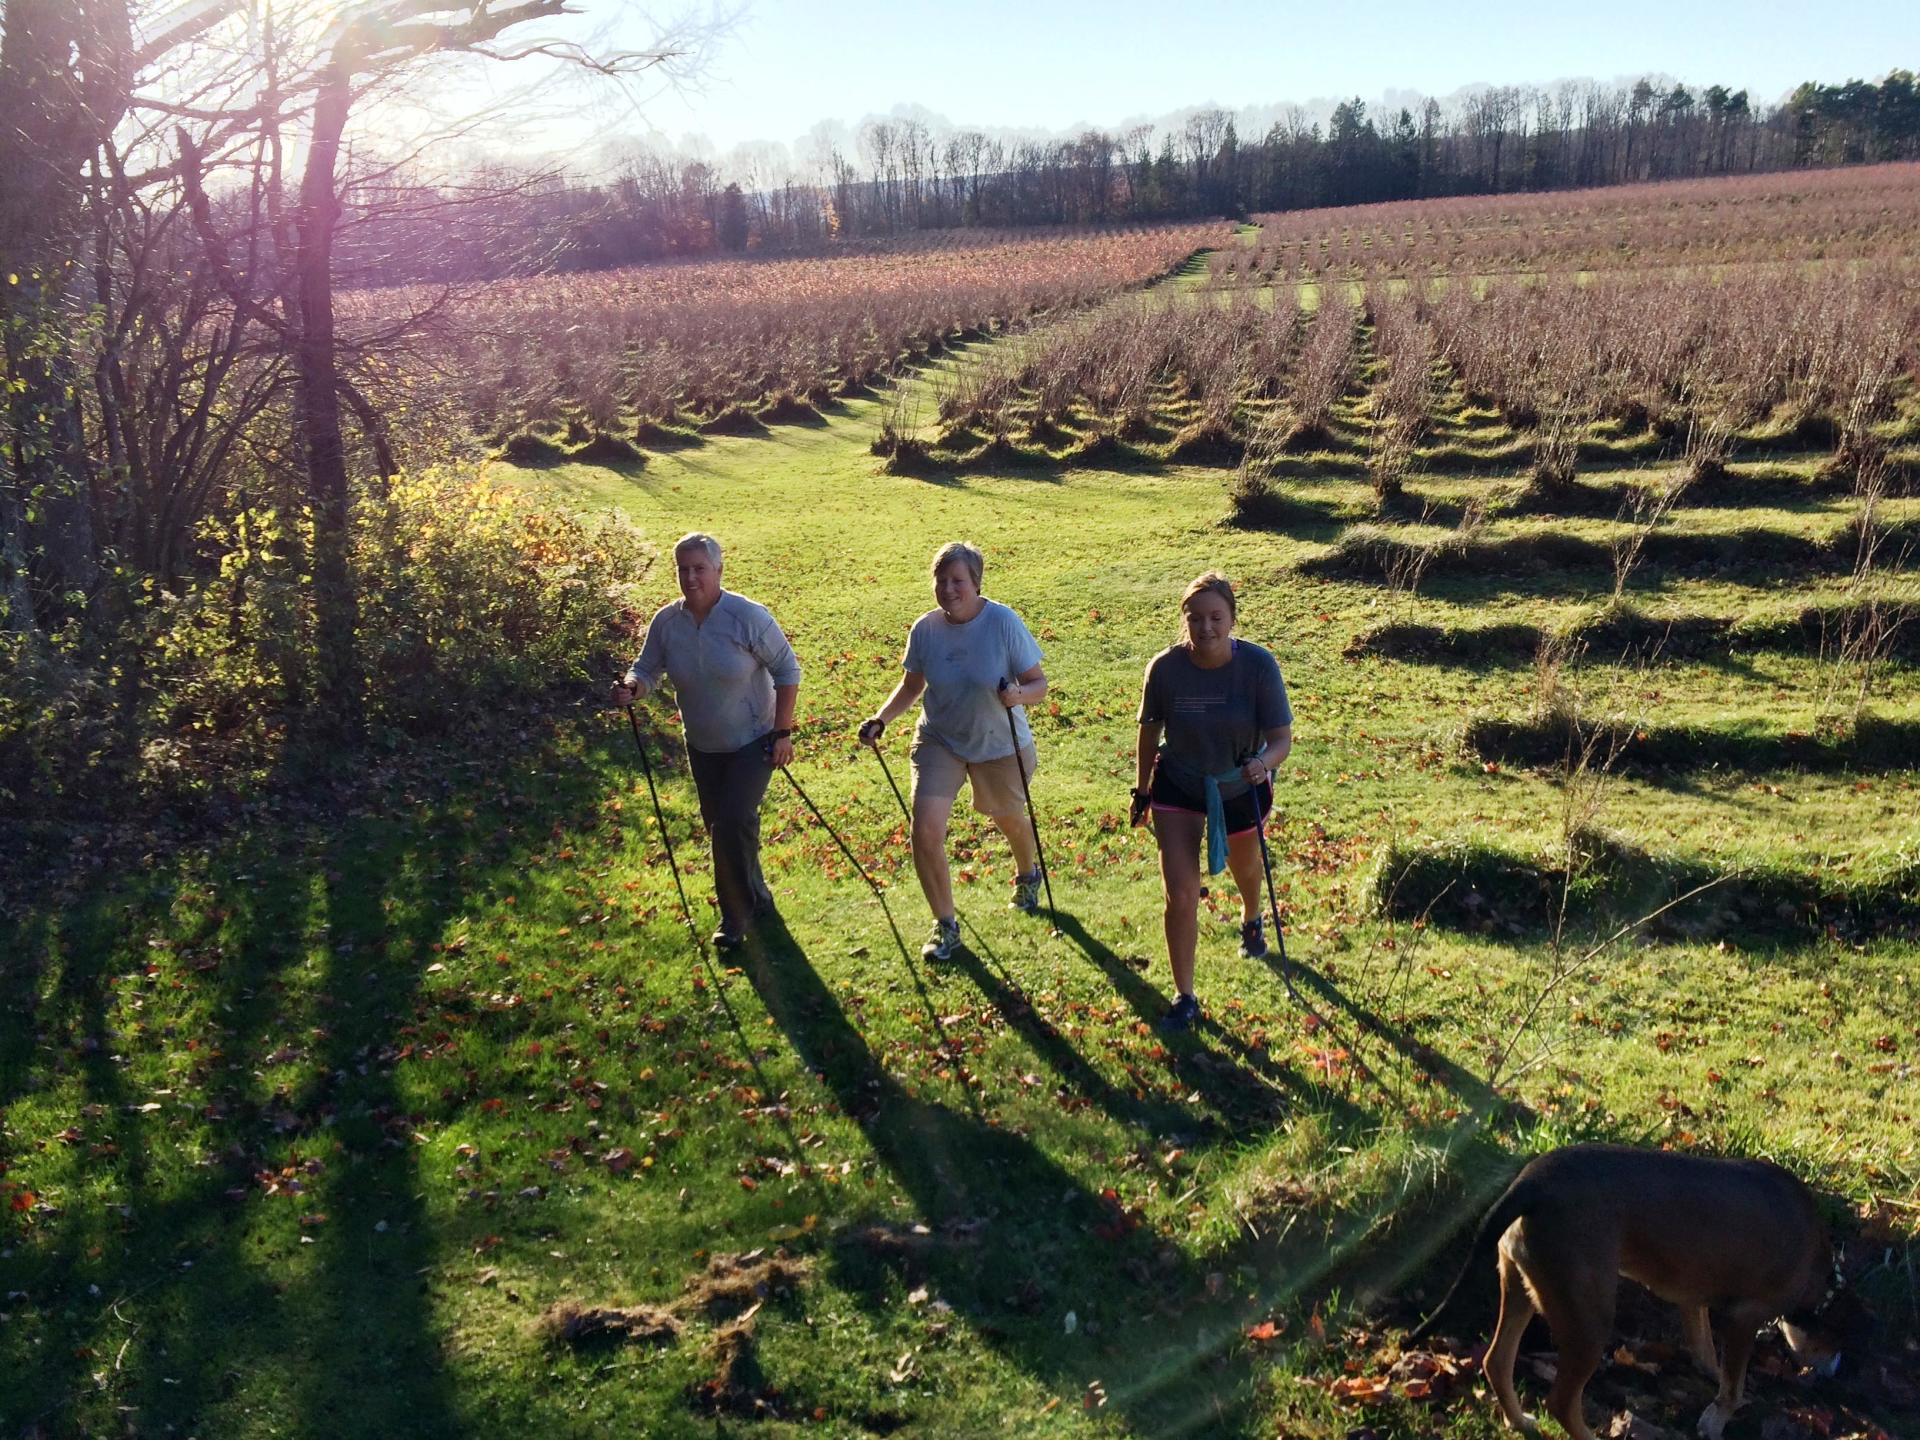 Nordic Walking at Burdick Blueberries